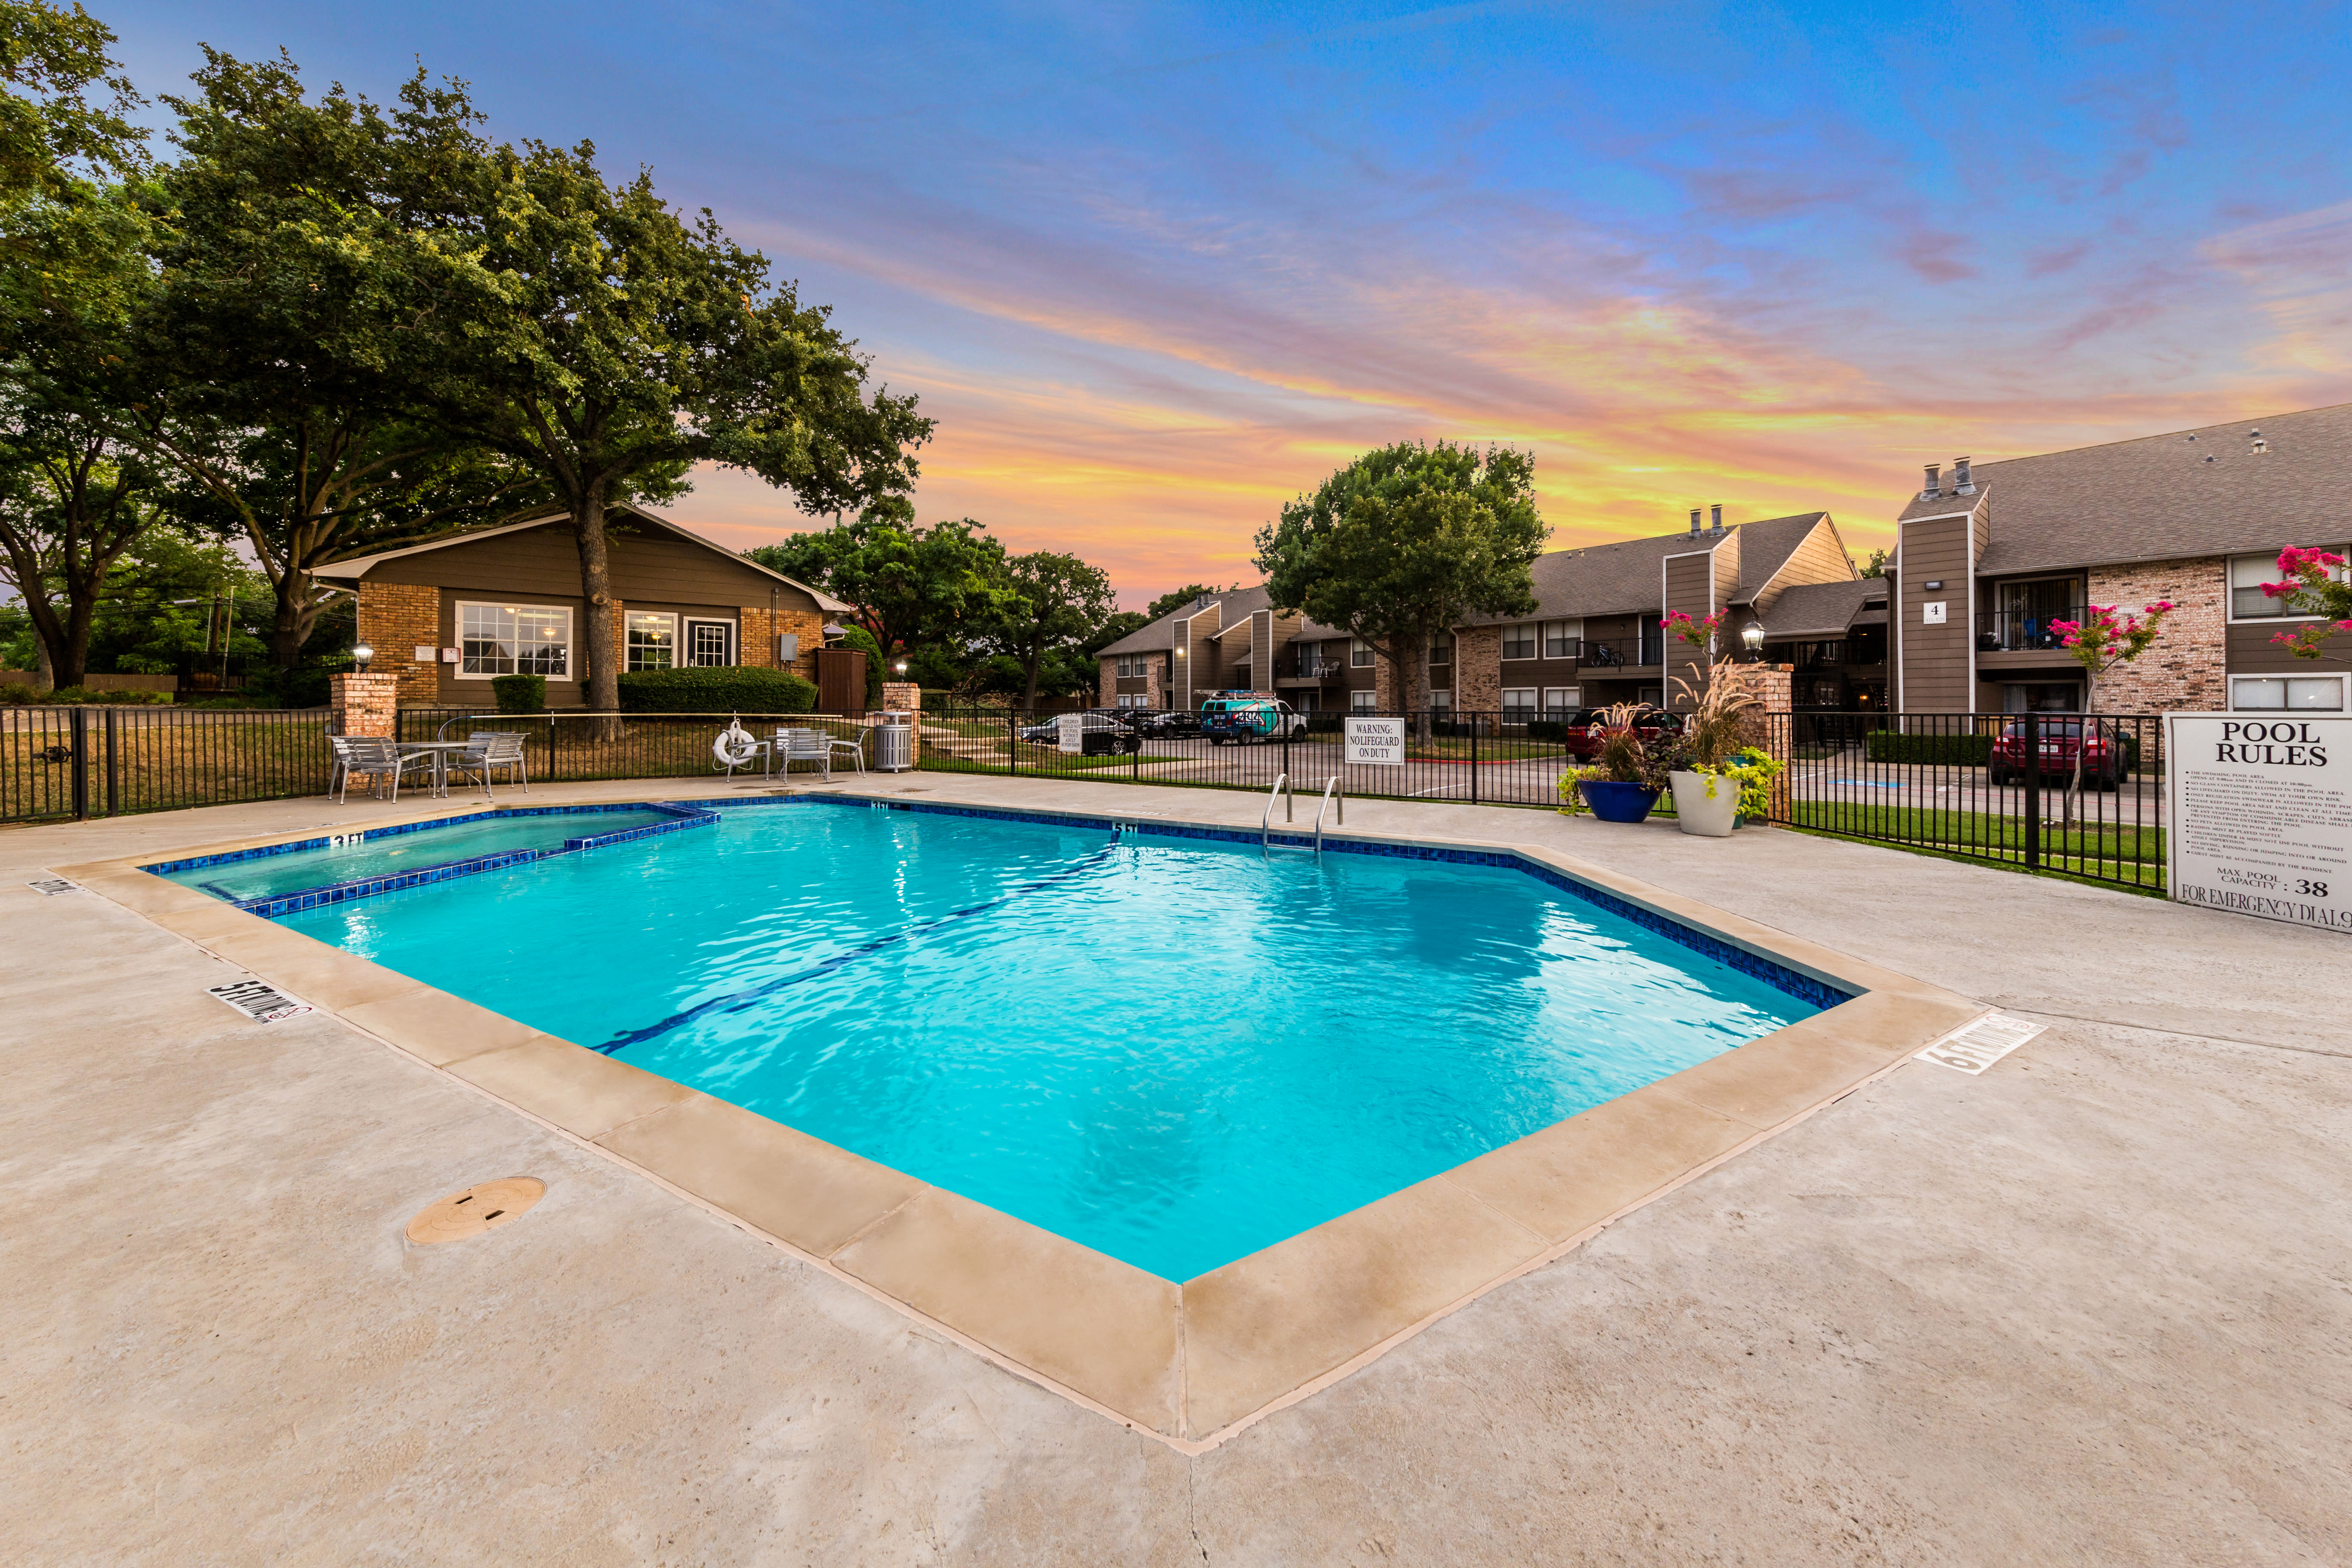 Gallery of photos for The Park at Flower Mound in Flower Mound, Texas